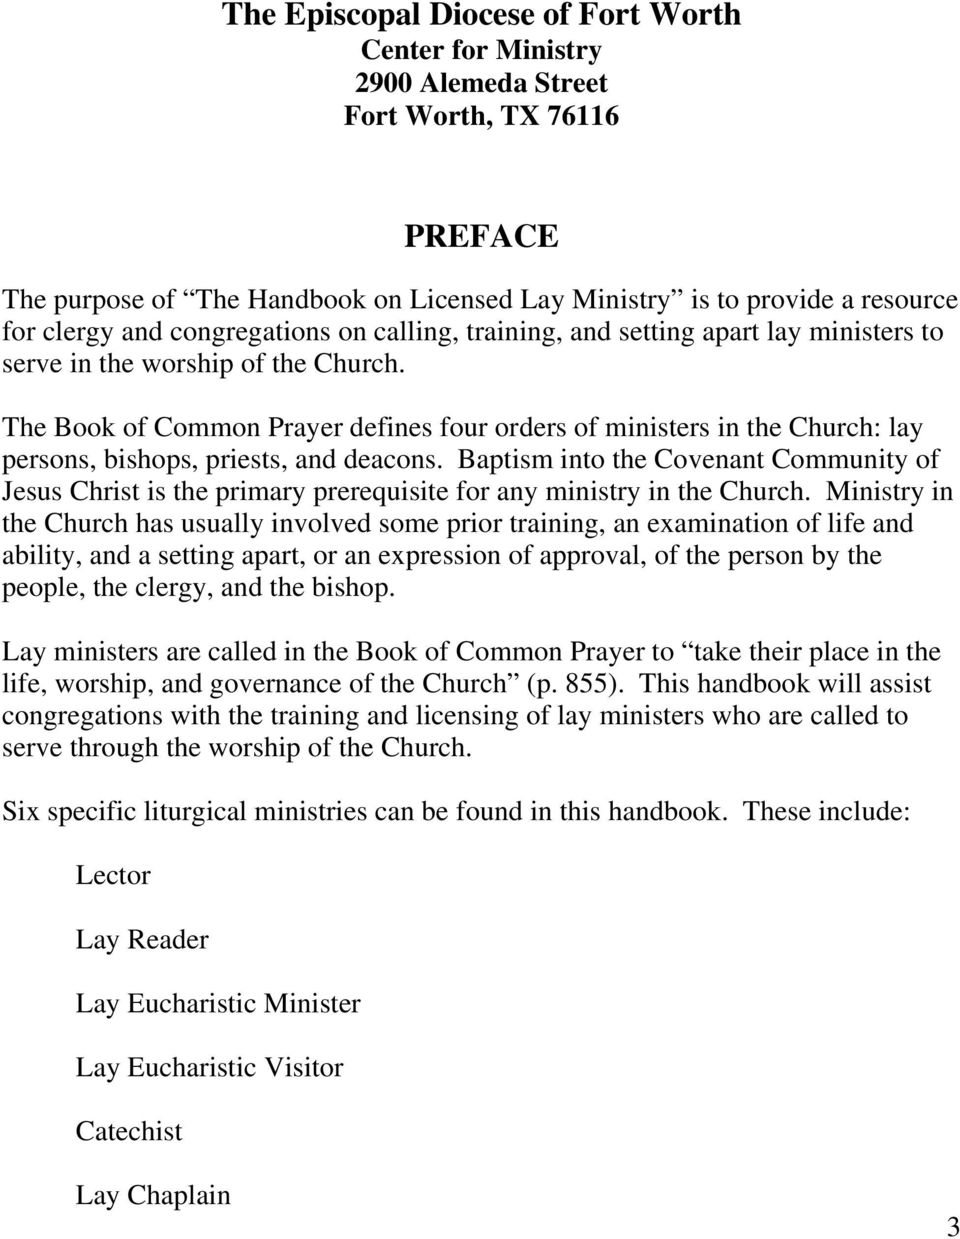 The Book of Common Prayer defines four orders of ministers in the Church: lay persons, bishops, priests, and deacons.